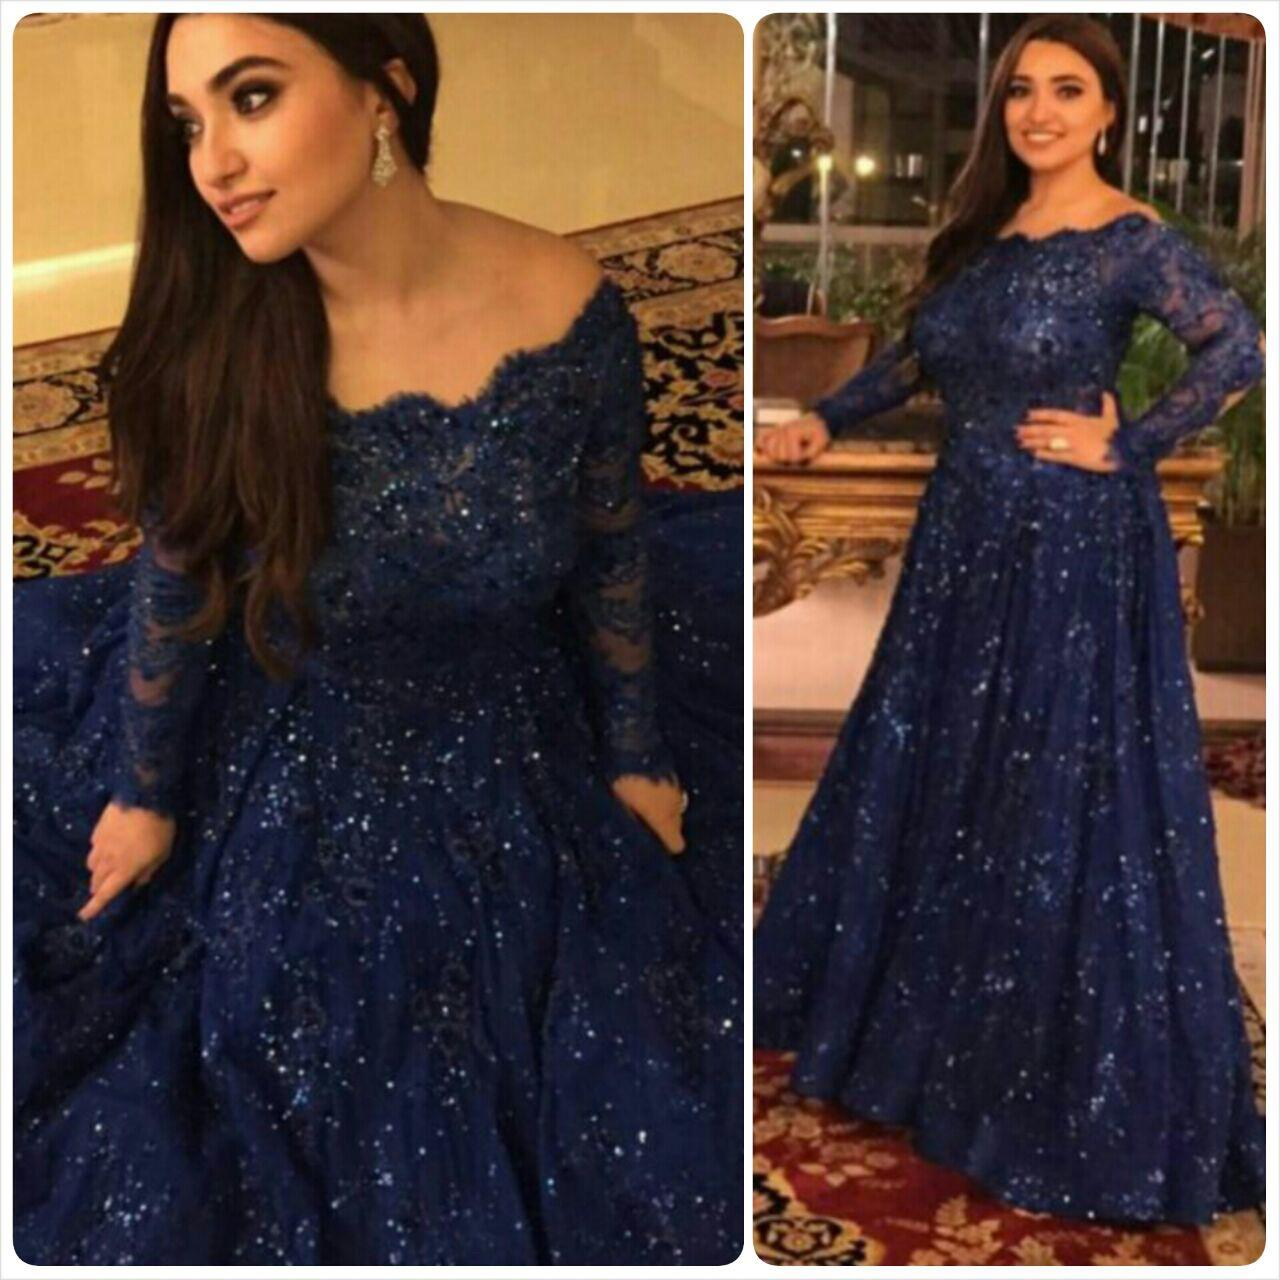 Navy Blue Arabic Evening Dresses 2015 Blingbling A Line Off Shoulder Hotfix Rhinestones Long Sleeves Lace Evening Prom Gowns dhyz 01